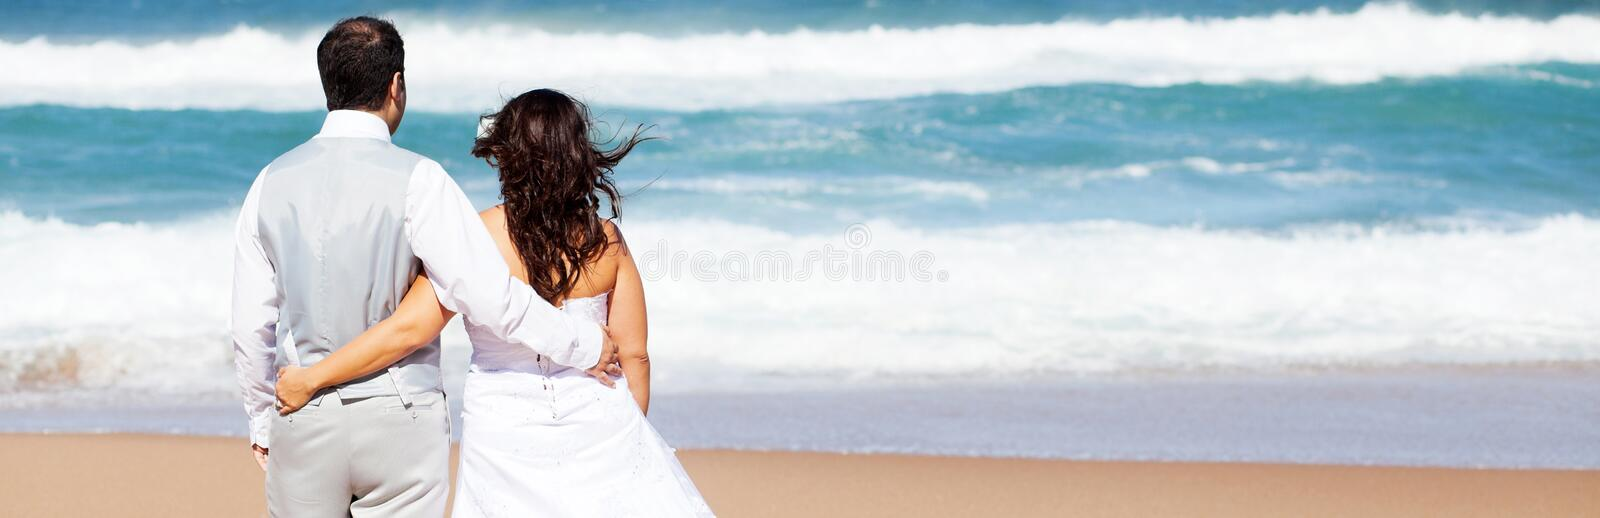 Download Groom and bride stock image. Image of sand, people, rear - 24816601